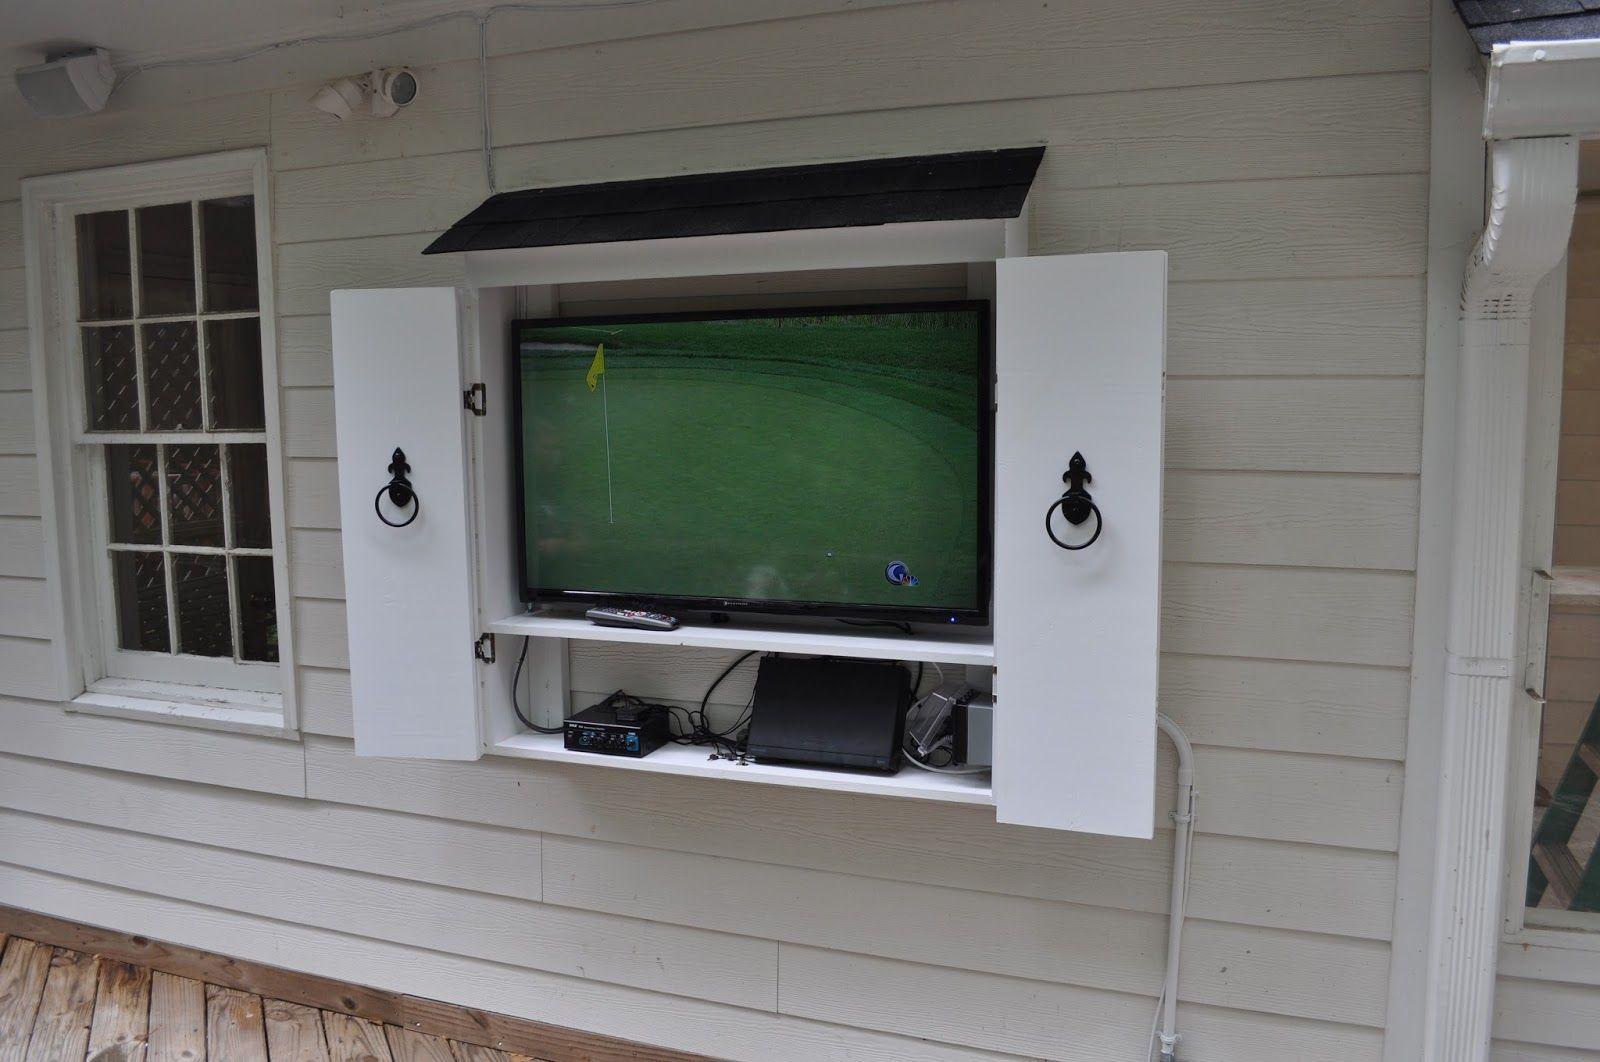 box outdoor waterproof television cabinets ideas tv weatherproof for cabinet cab